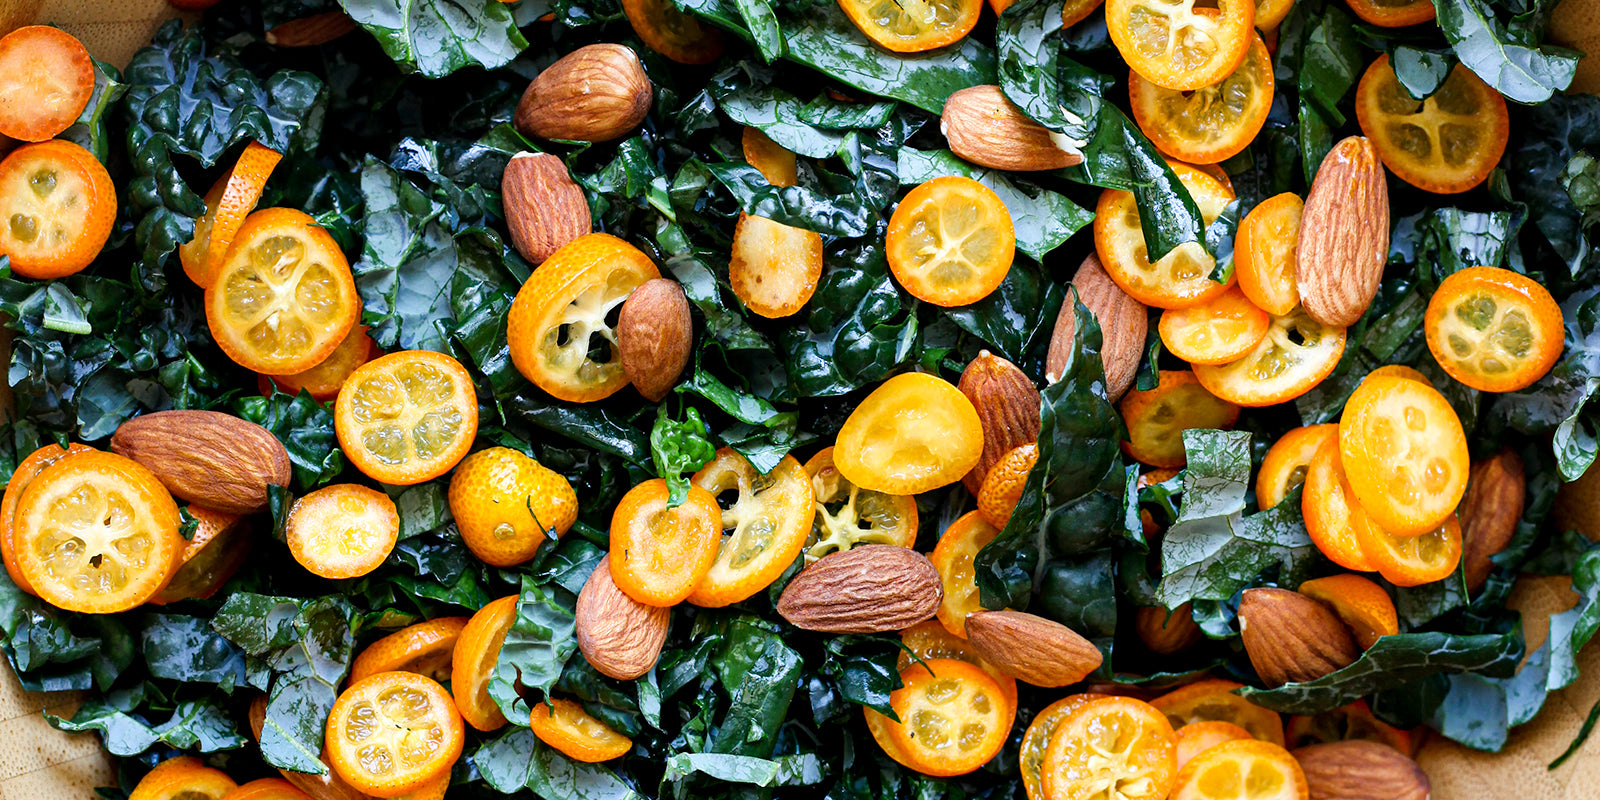 Kale and Kumquat Salad